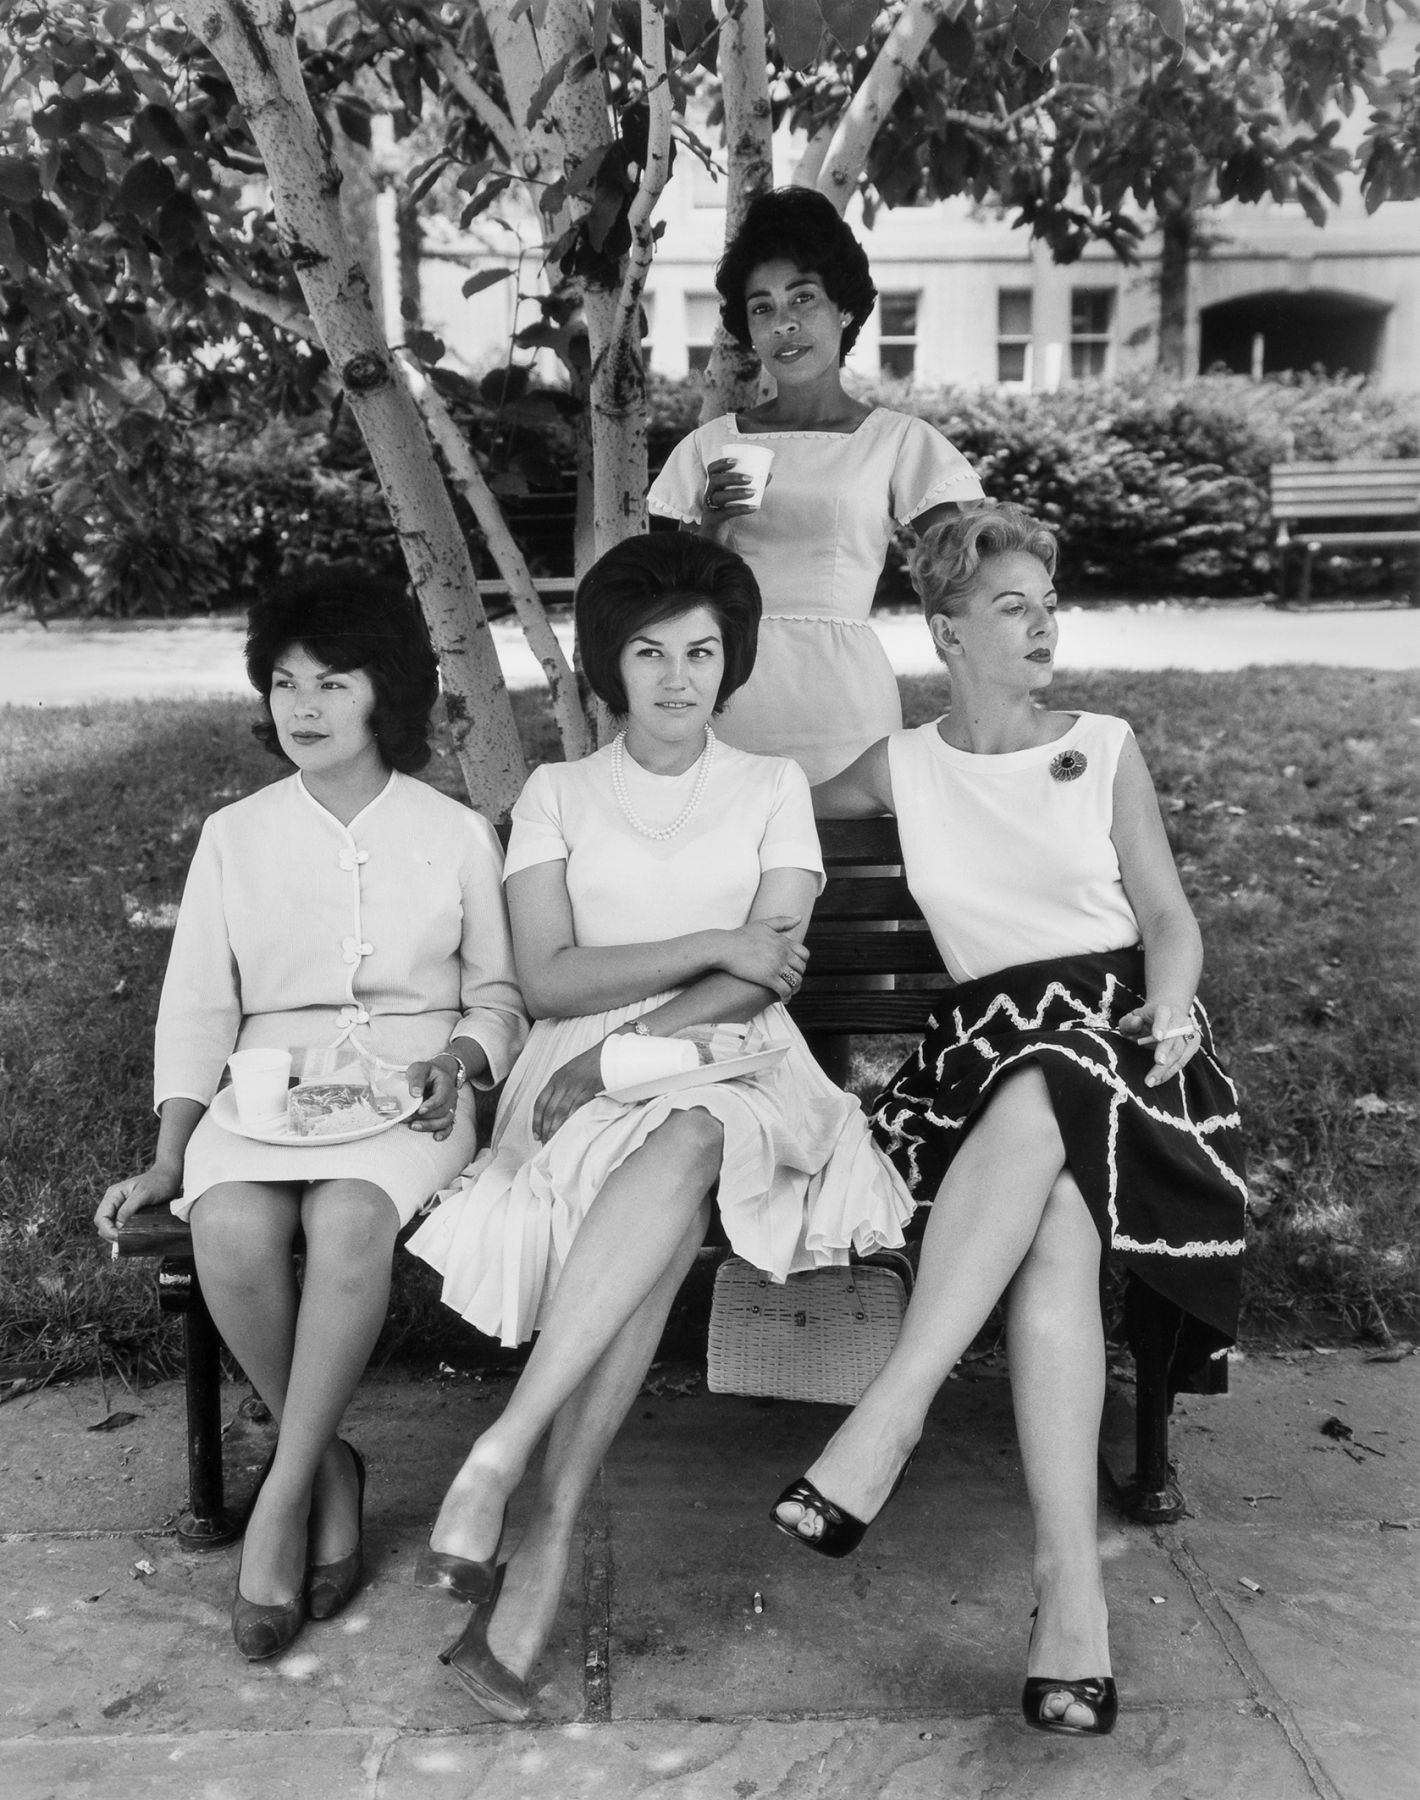 Secretaries in Rawlings Park, Washington D.C. 1965, 20 x 16 inch gelatin silver print